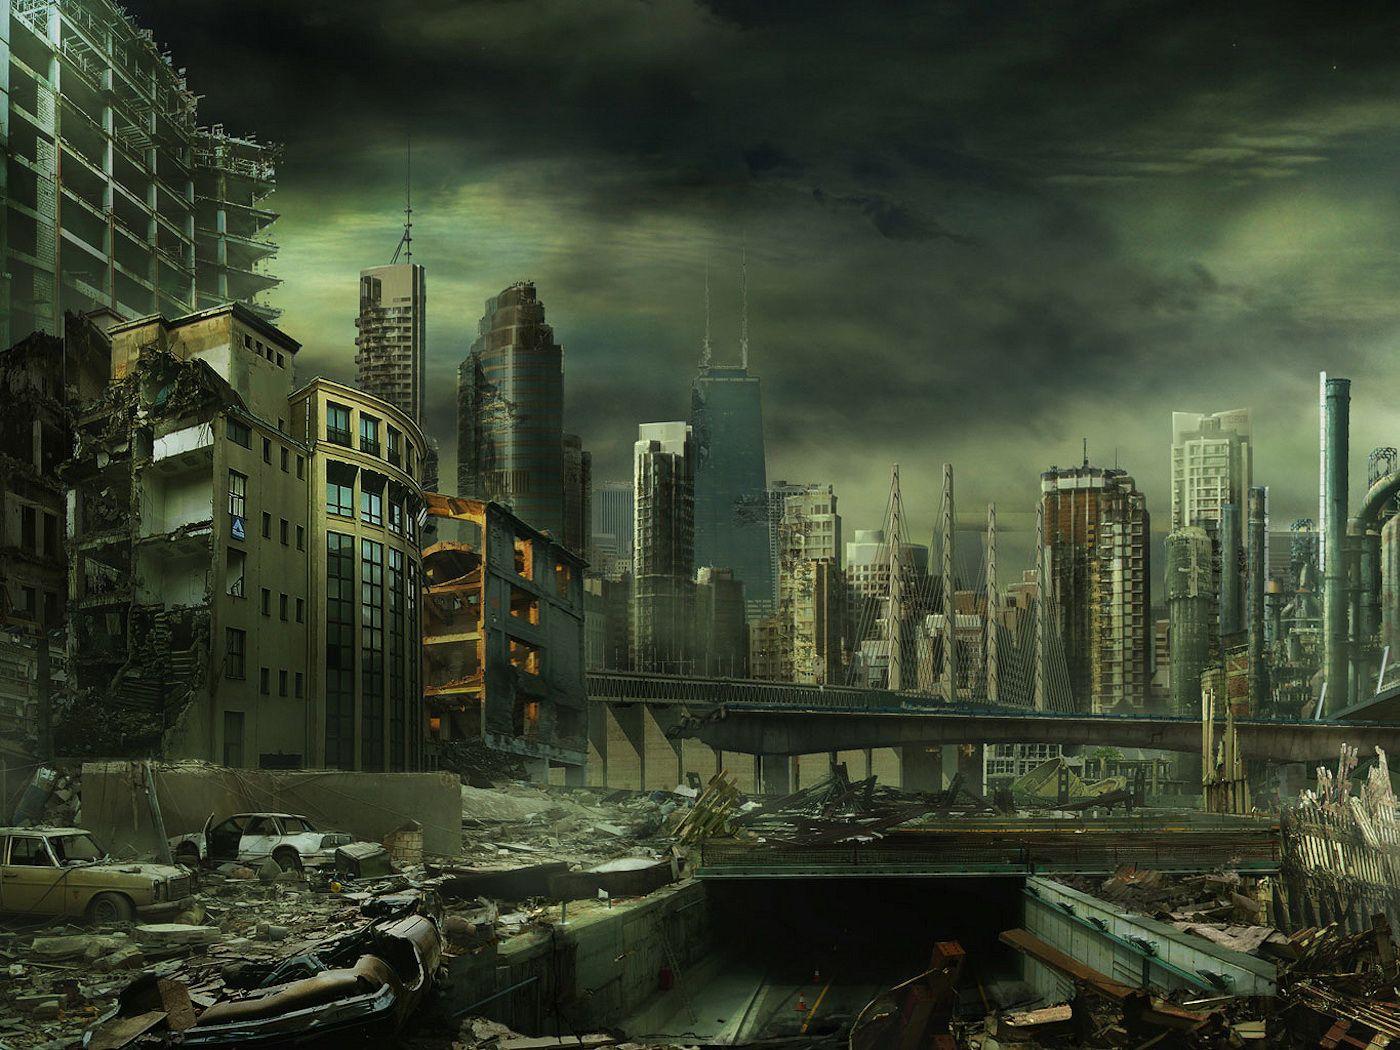 Pin By Caitlin Campbell On Zompocalypse Post Apocalyptic City Post Apocalyptic Abandoned City